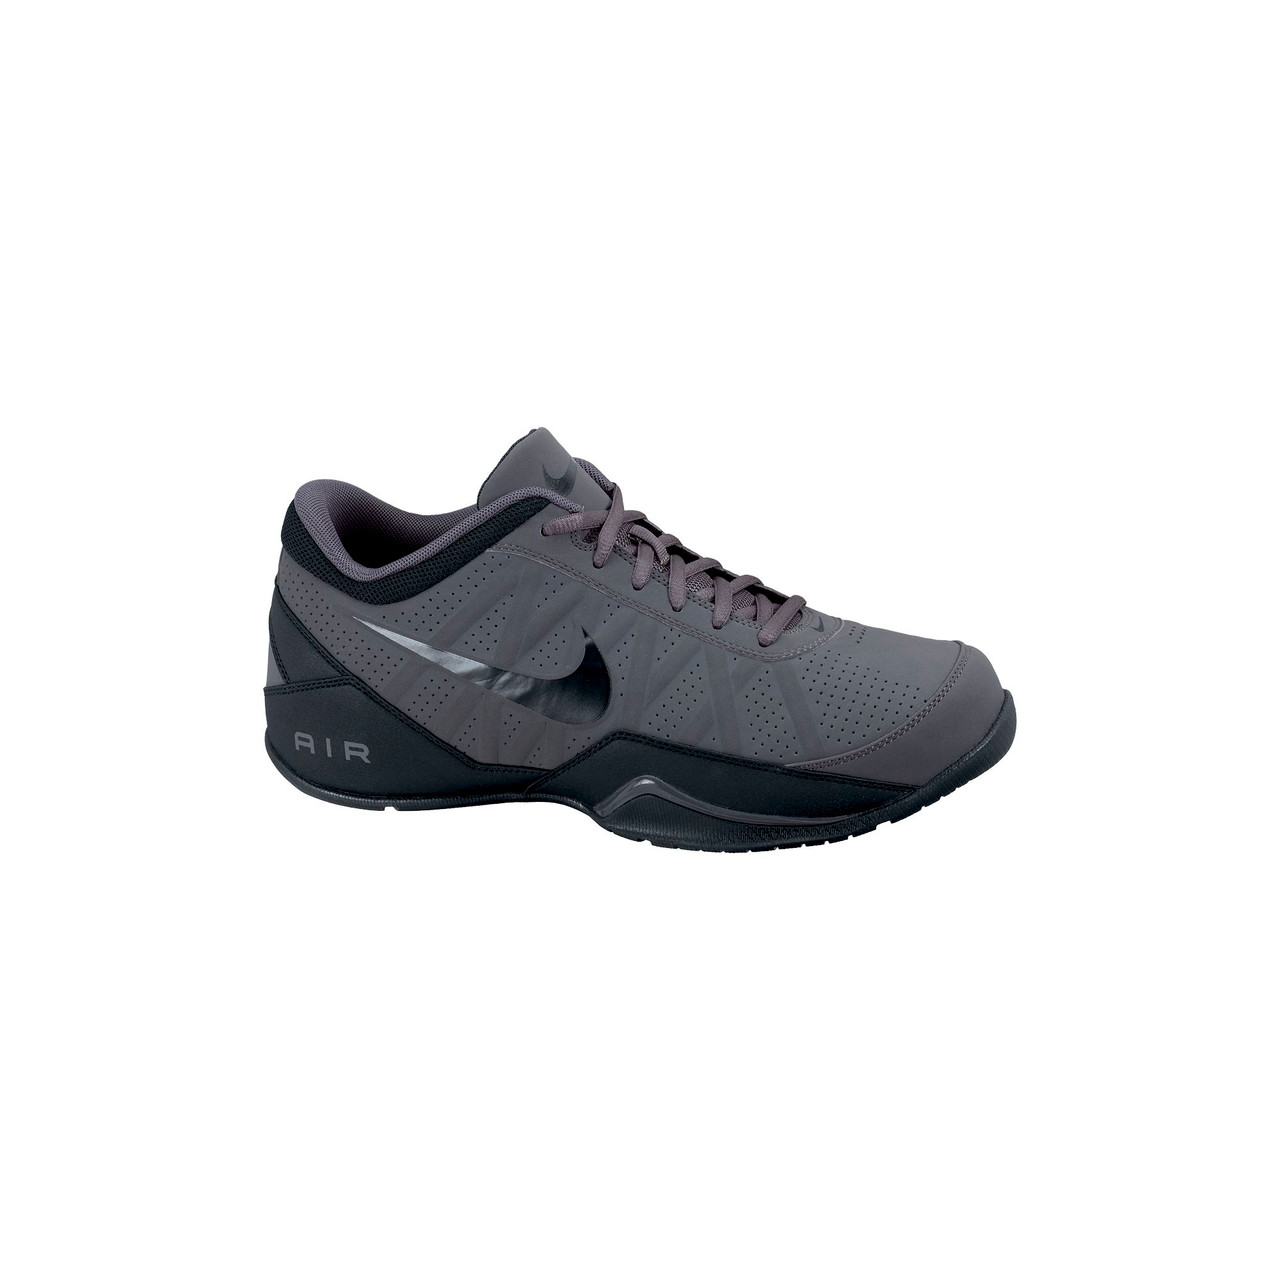 d5bba200eb65 Men s Nike Air Ring Leader Low Basketball Shoe - Sieverts Sporting Goods